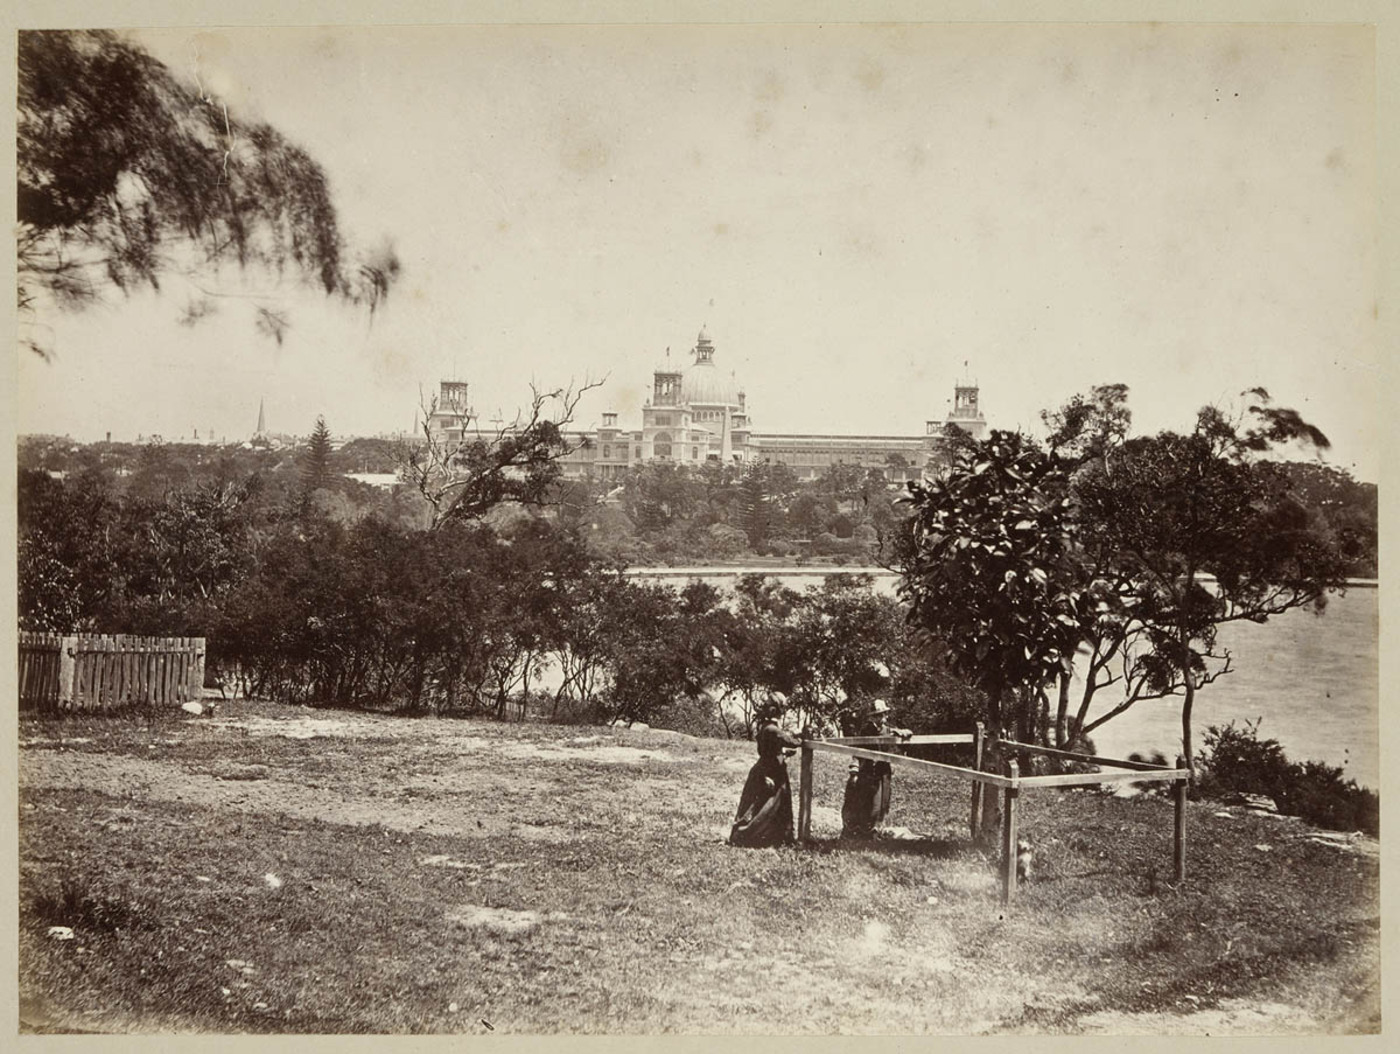 View from Mrs Macquarie's Point looking at Garden Palace c 1879, by Tronier Artist Photographer